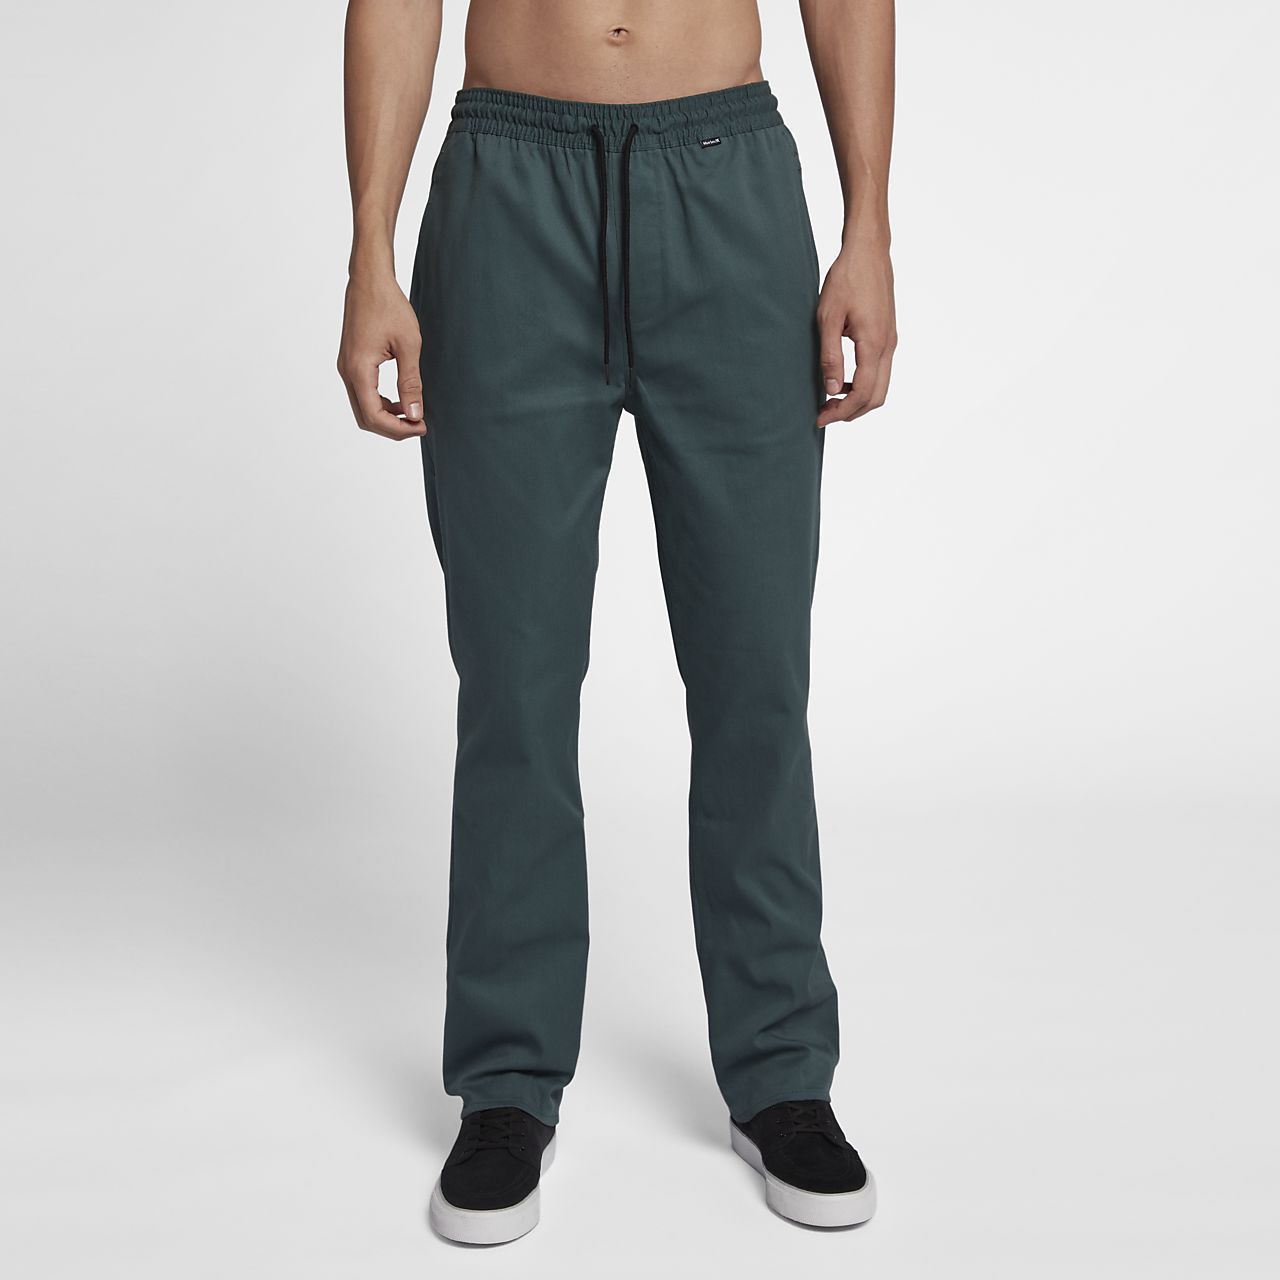 Hurley Dri-FIT Ditch Herrenhose